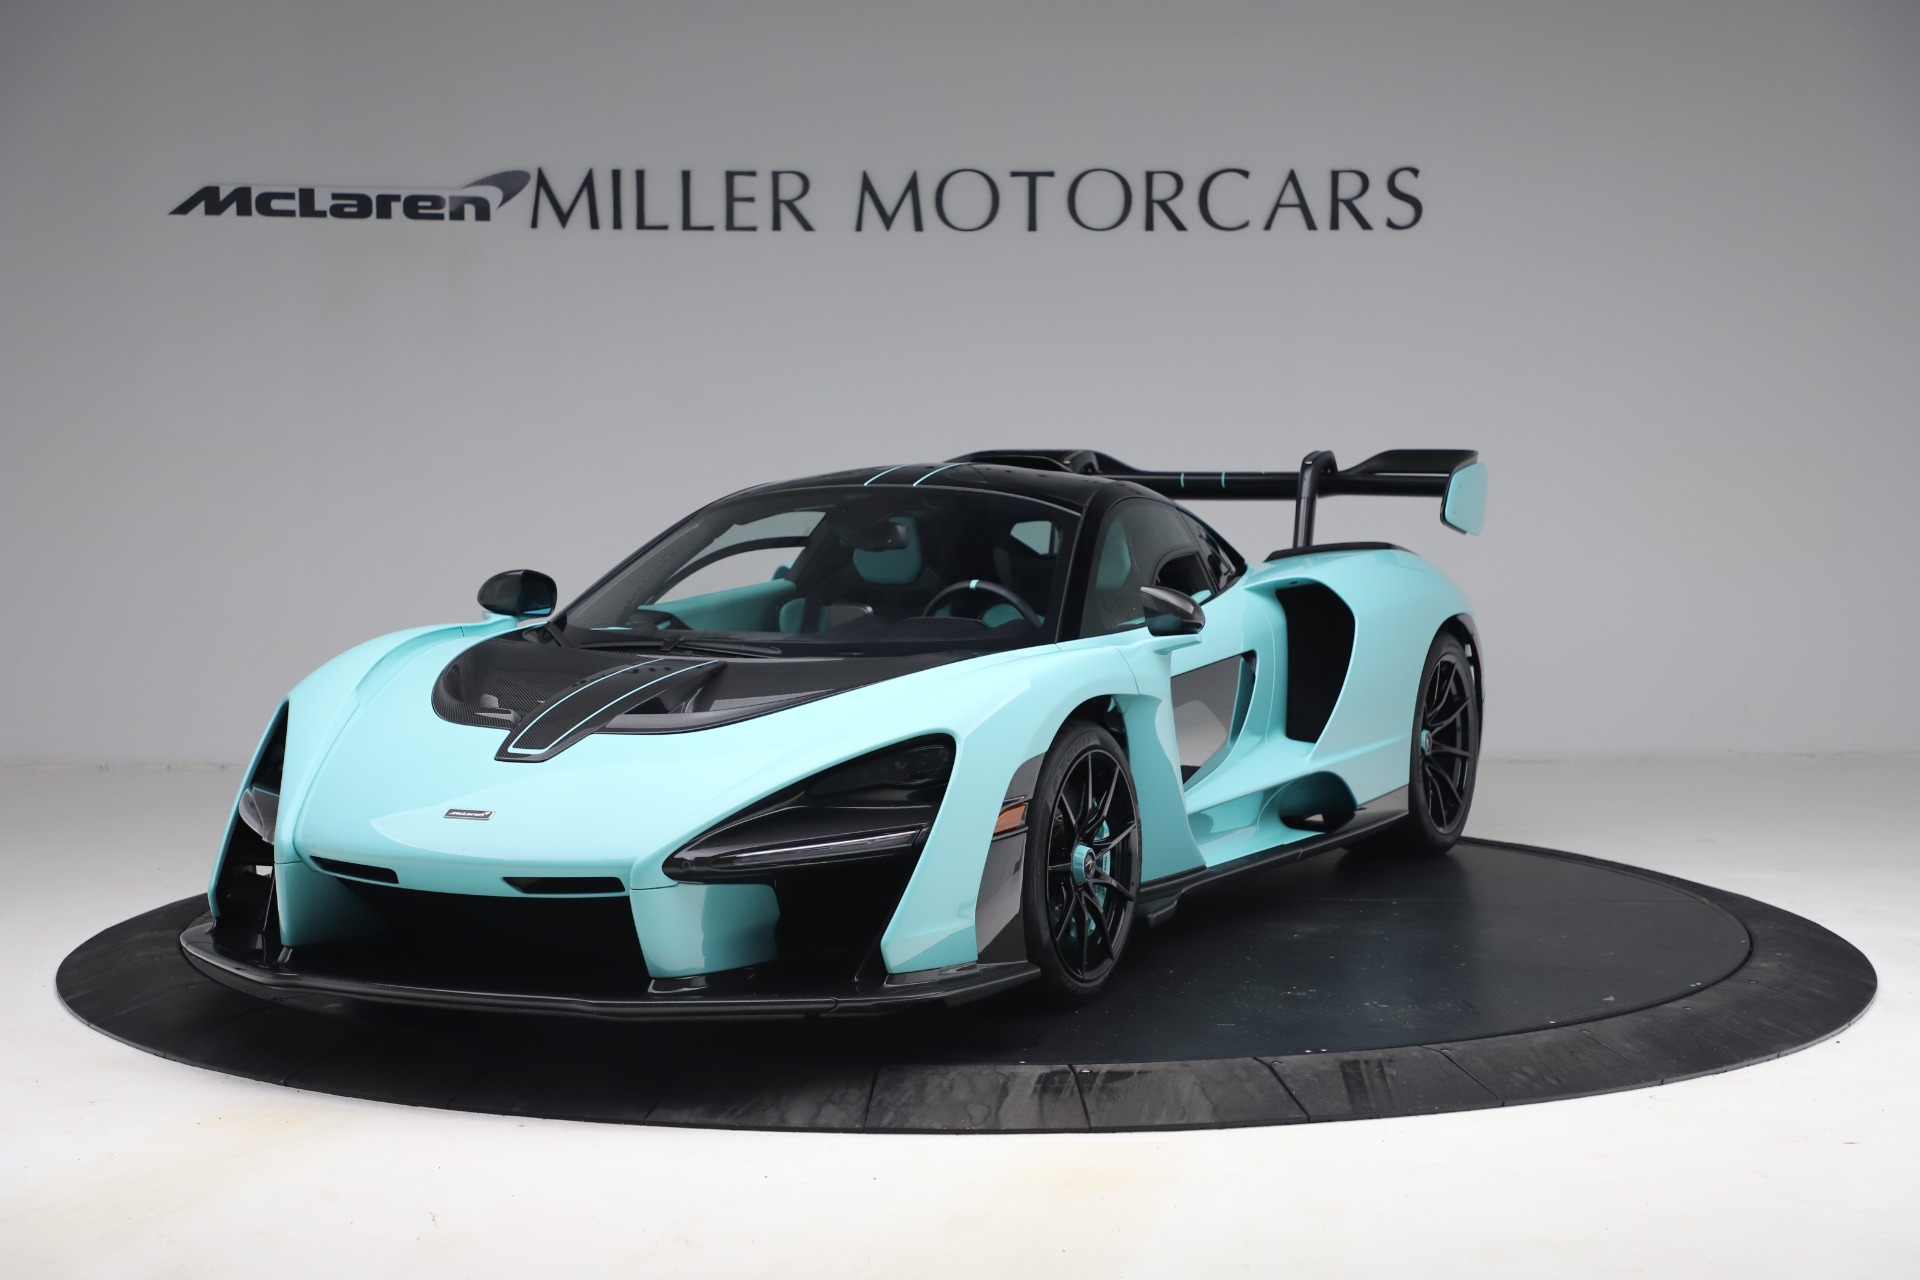 Used 2019 McLaren Senna for sale Sold at Aston Martin of Greenwich in Greenwich CT 06830 1